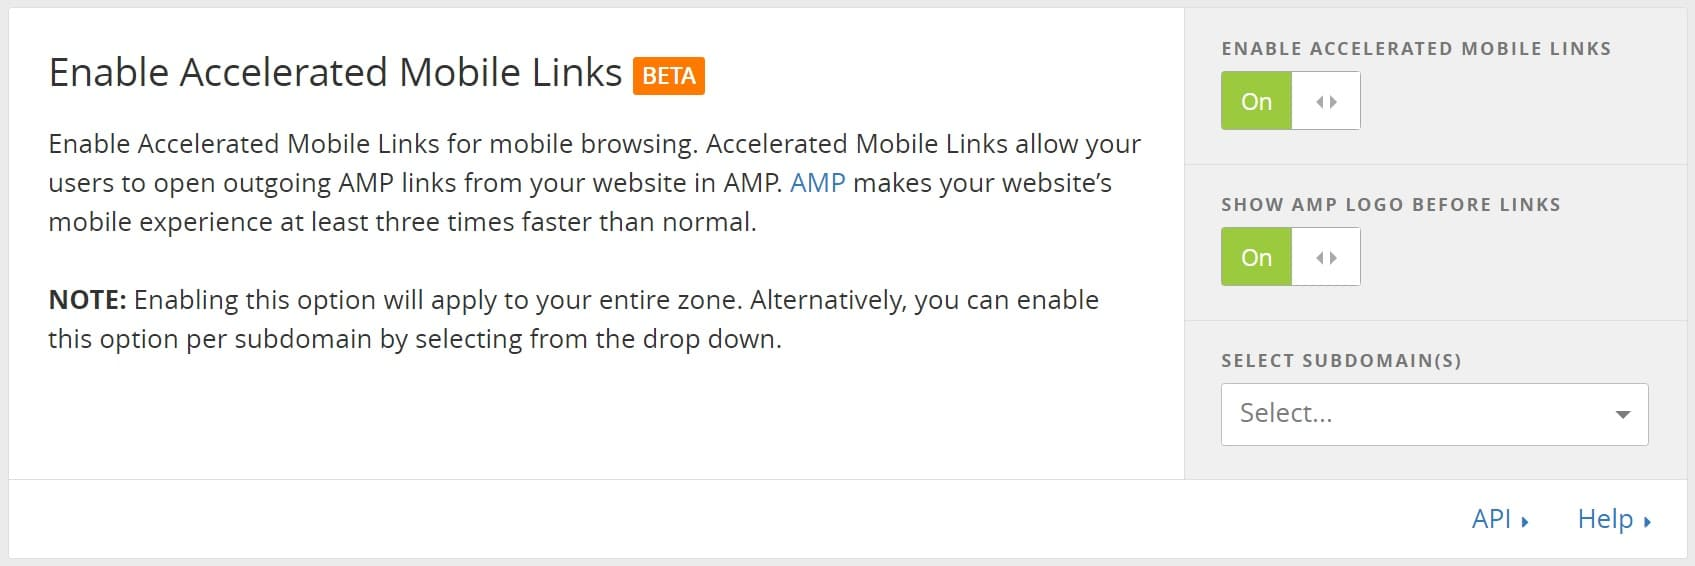 cloudflare accelerated mobile links